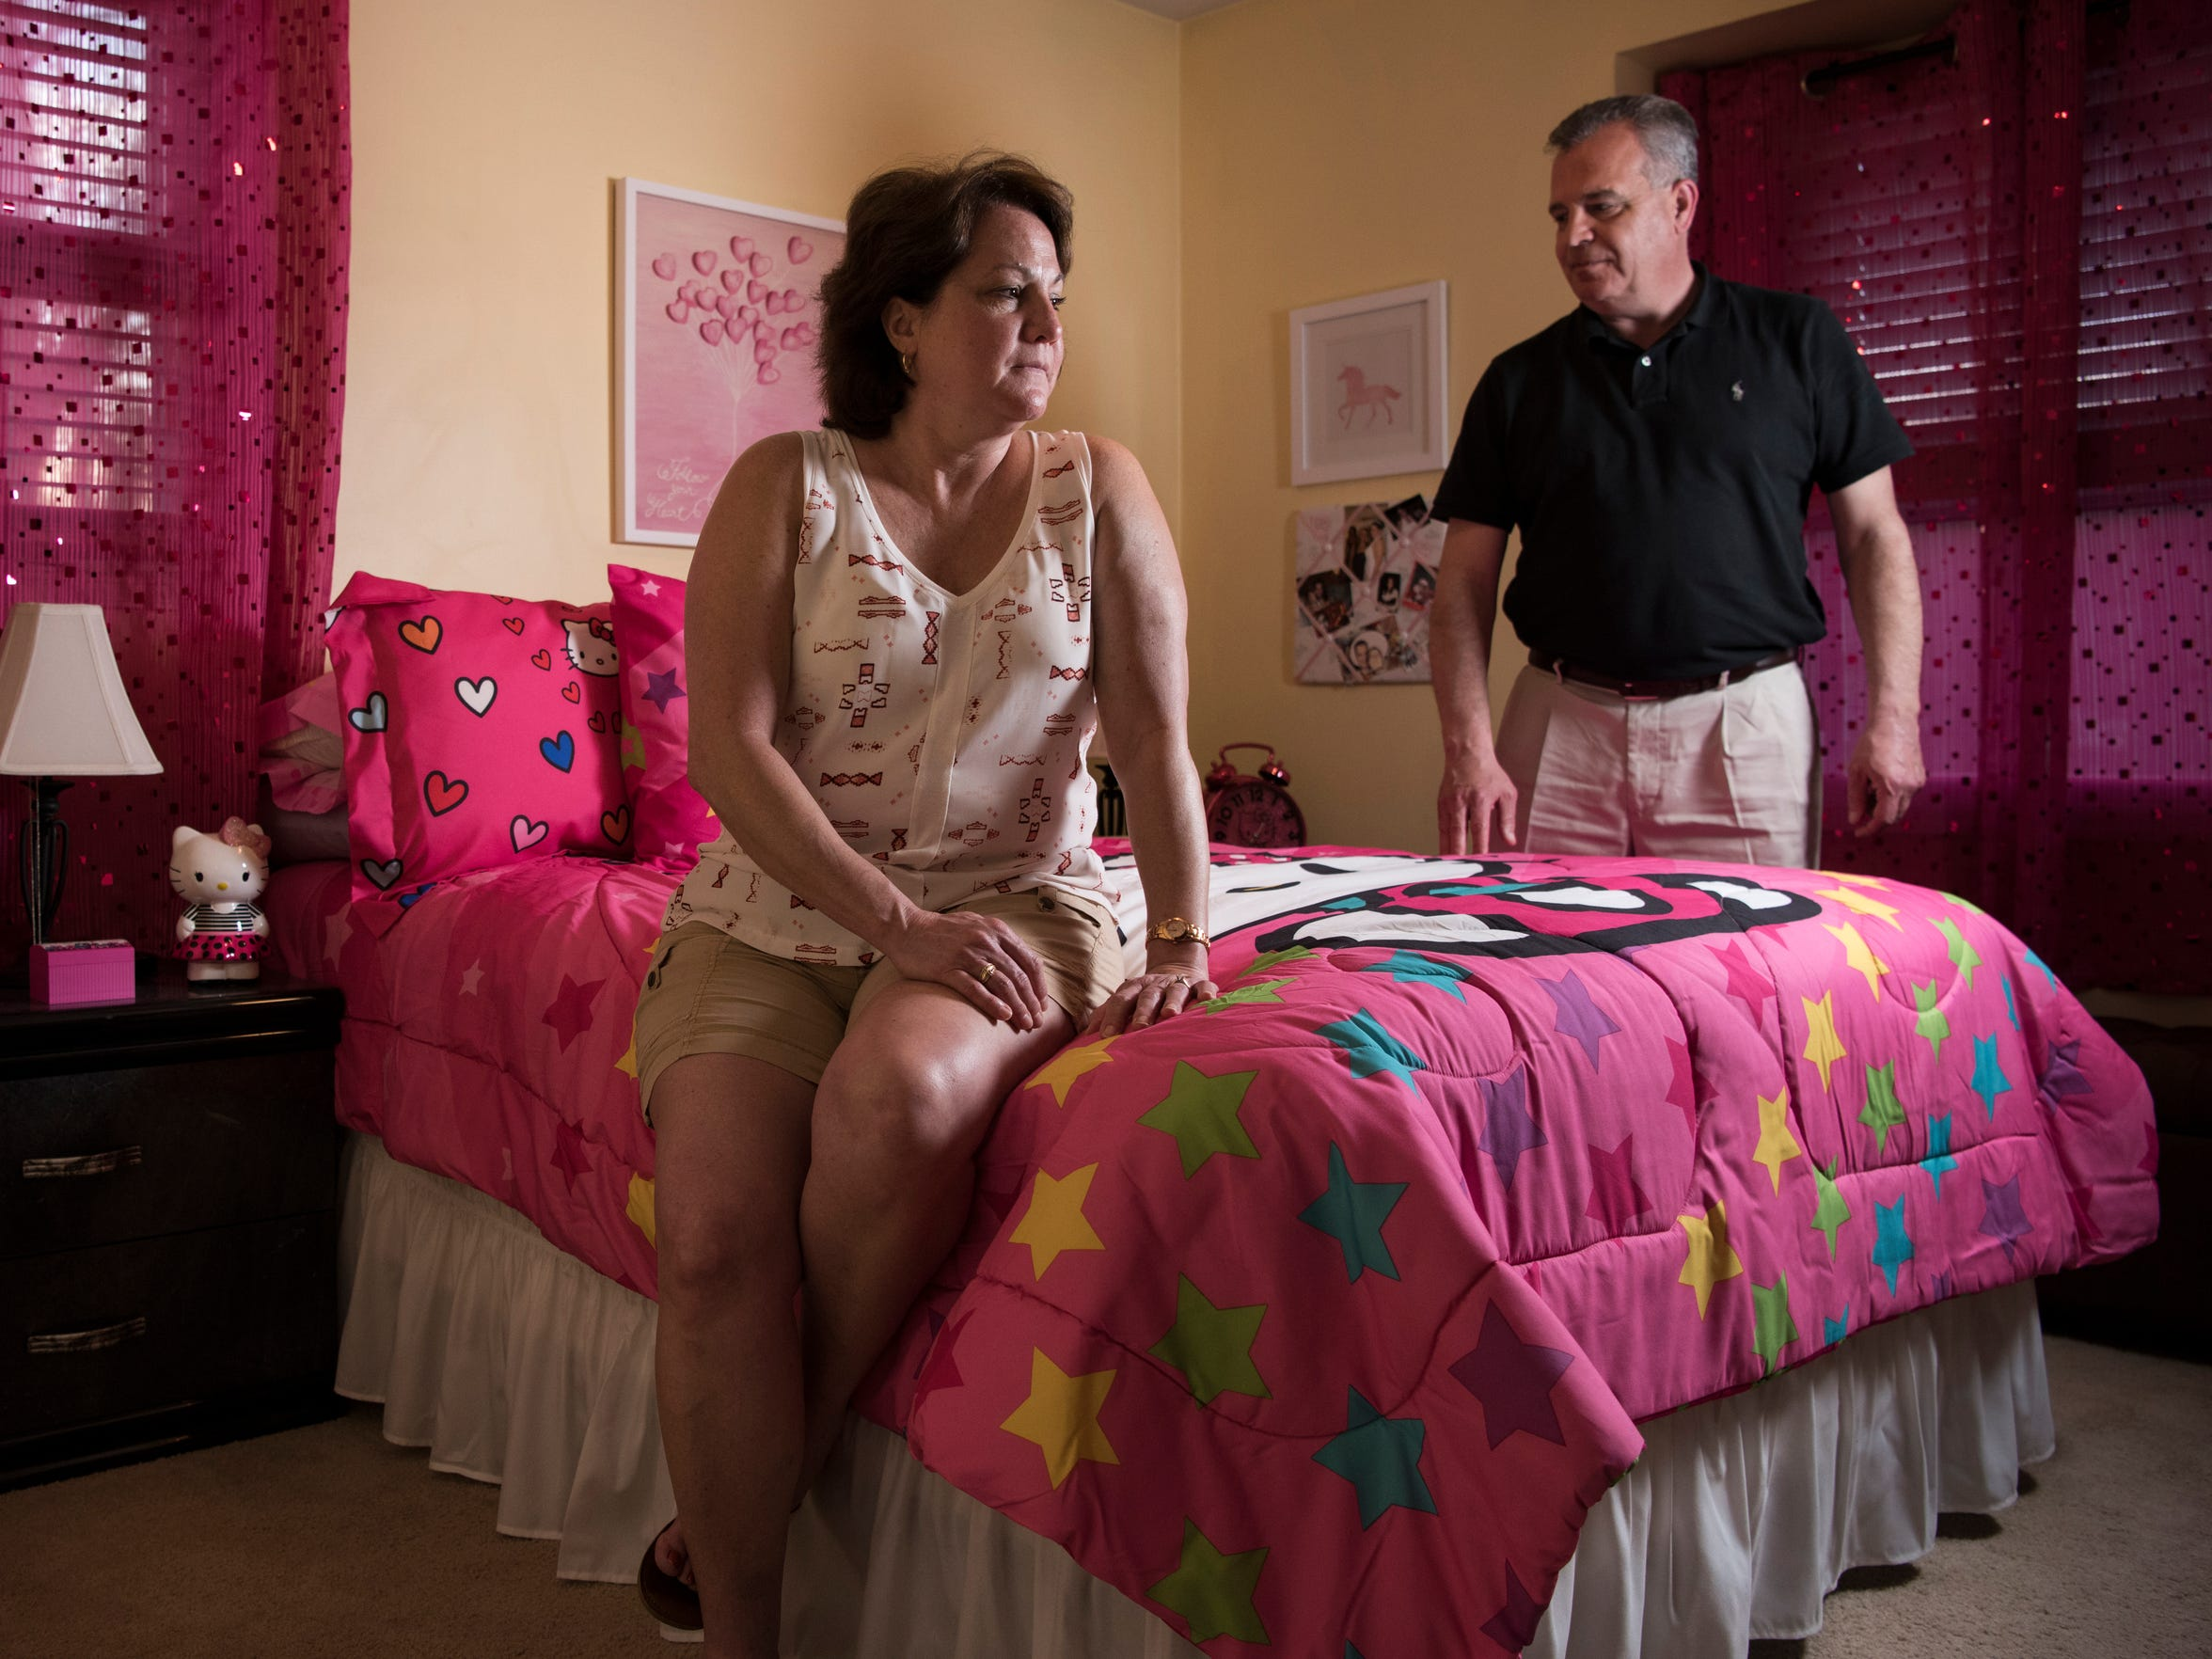 Jim and Stacey Rilee of Roxbury have decorated their late daughter's old room in pink, anticipating that her daughter, 8-year-old Annabelle, will come for a visit.